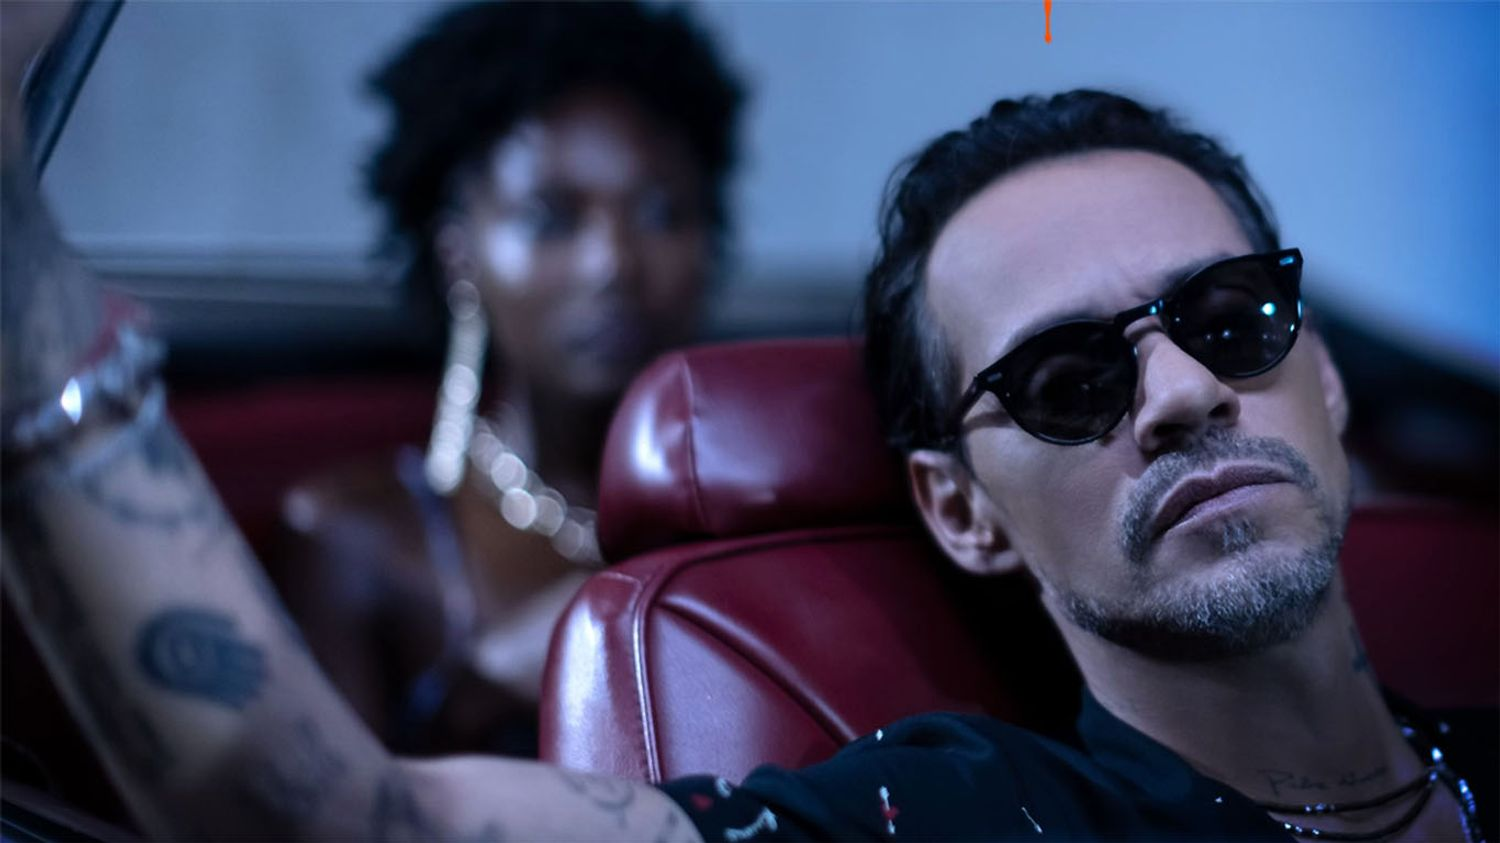 Marc Anthony - Pa'llaVoy